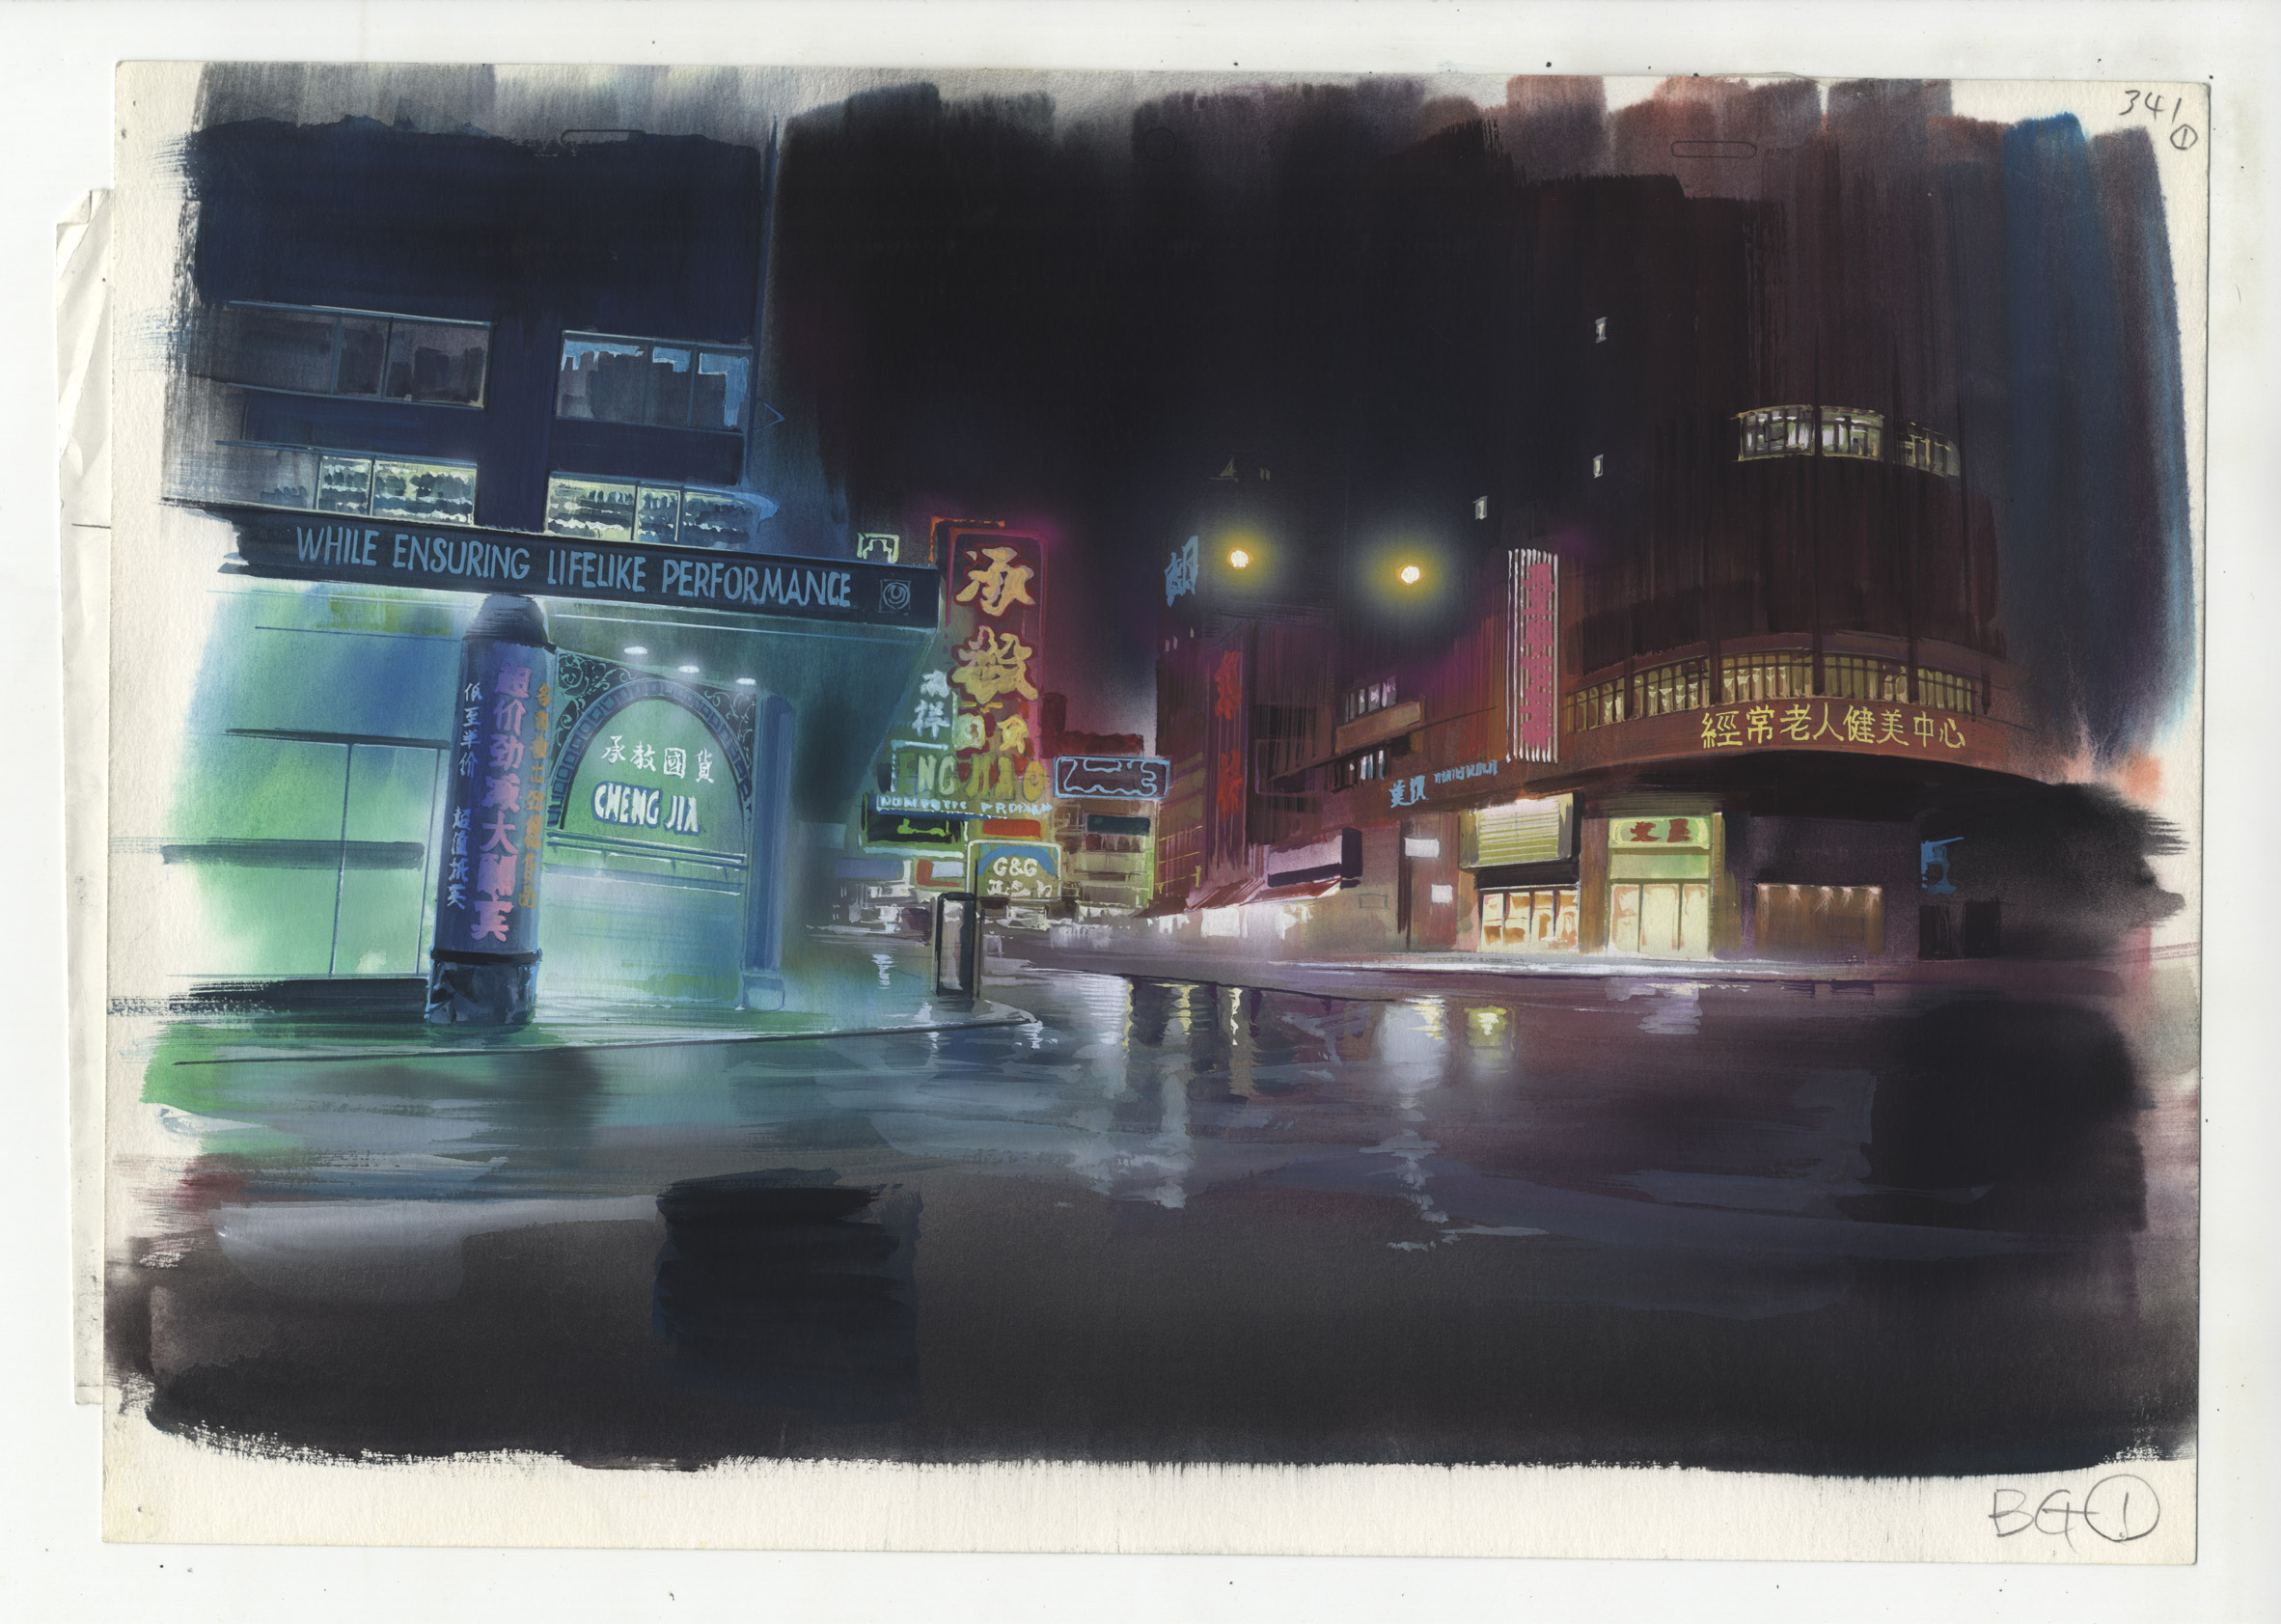 Anime Architecture: Backgrounds of Japan exhibition at the House of Illustration